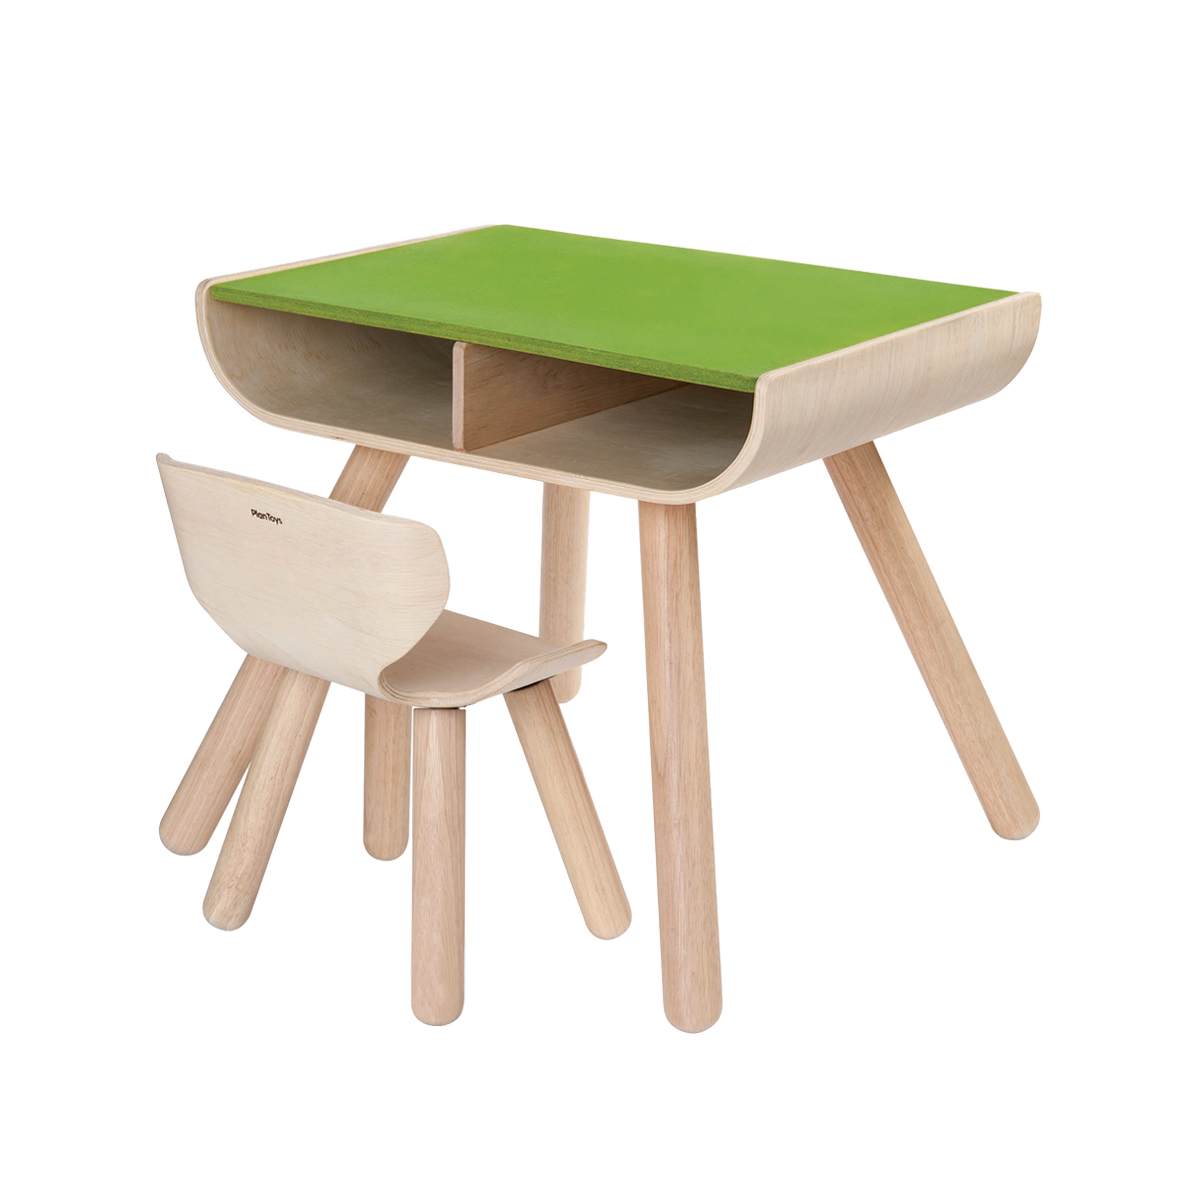 Plan Toys Desk & Chair Green